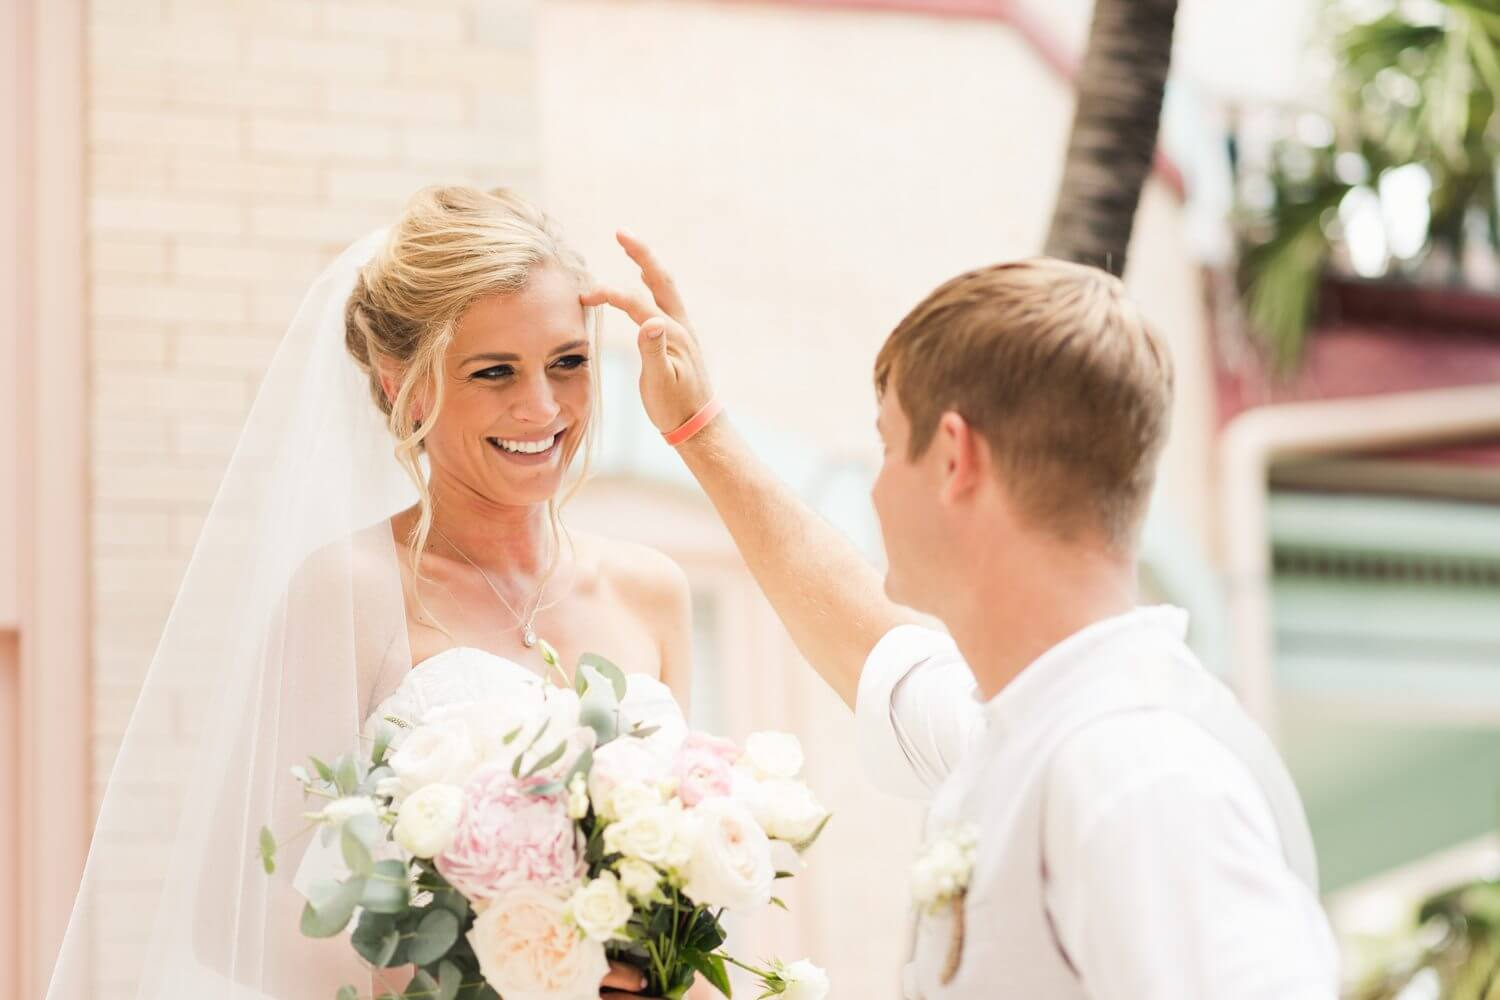 Freas Photography Southernmost House Wedding 57 - Boho Styled Key West Wedding at the Southernmost House in Key West, Florida